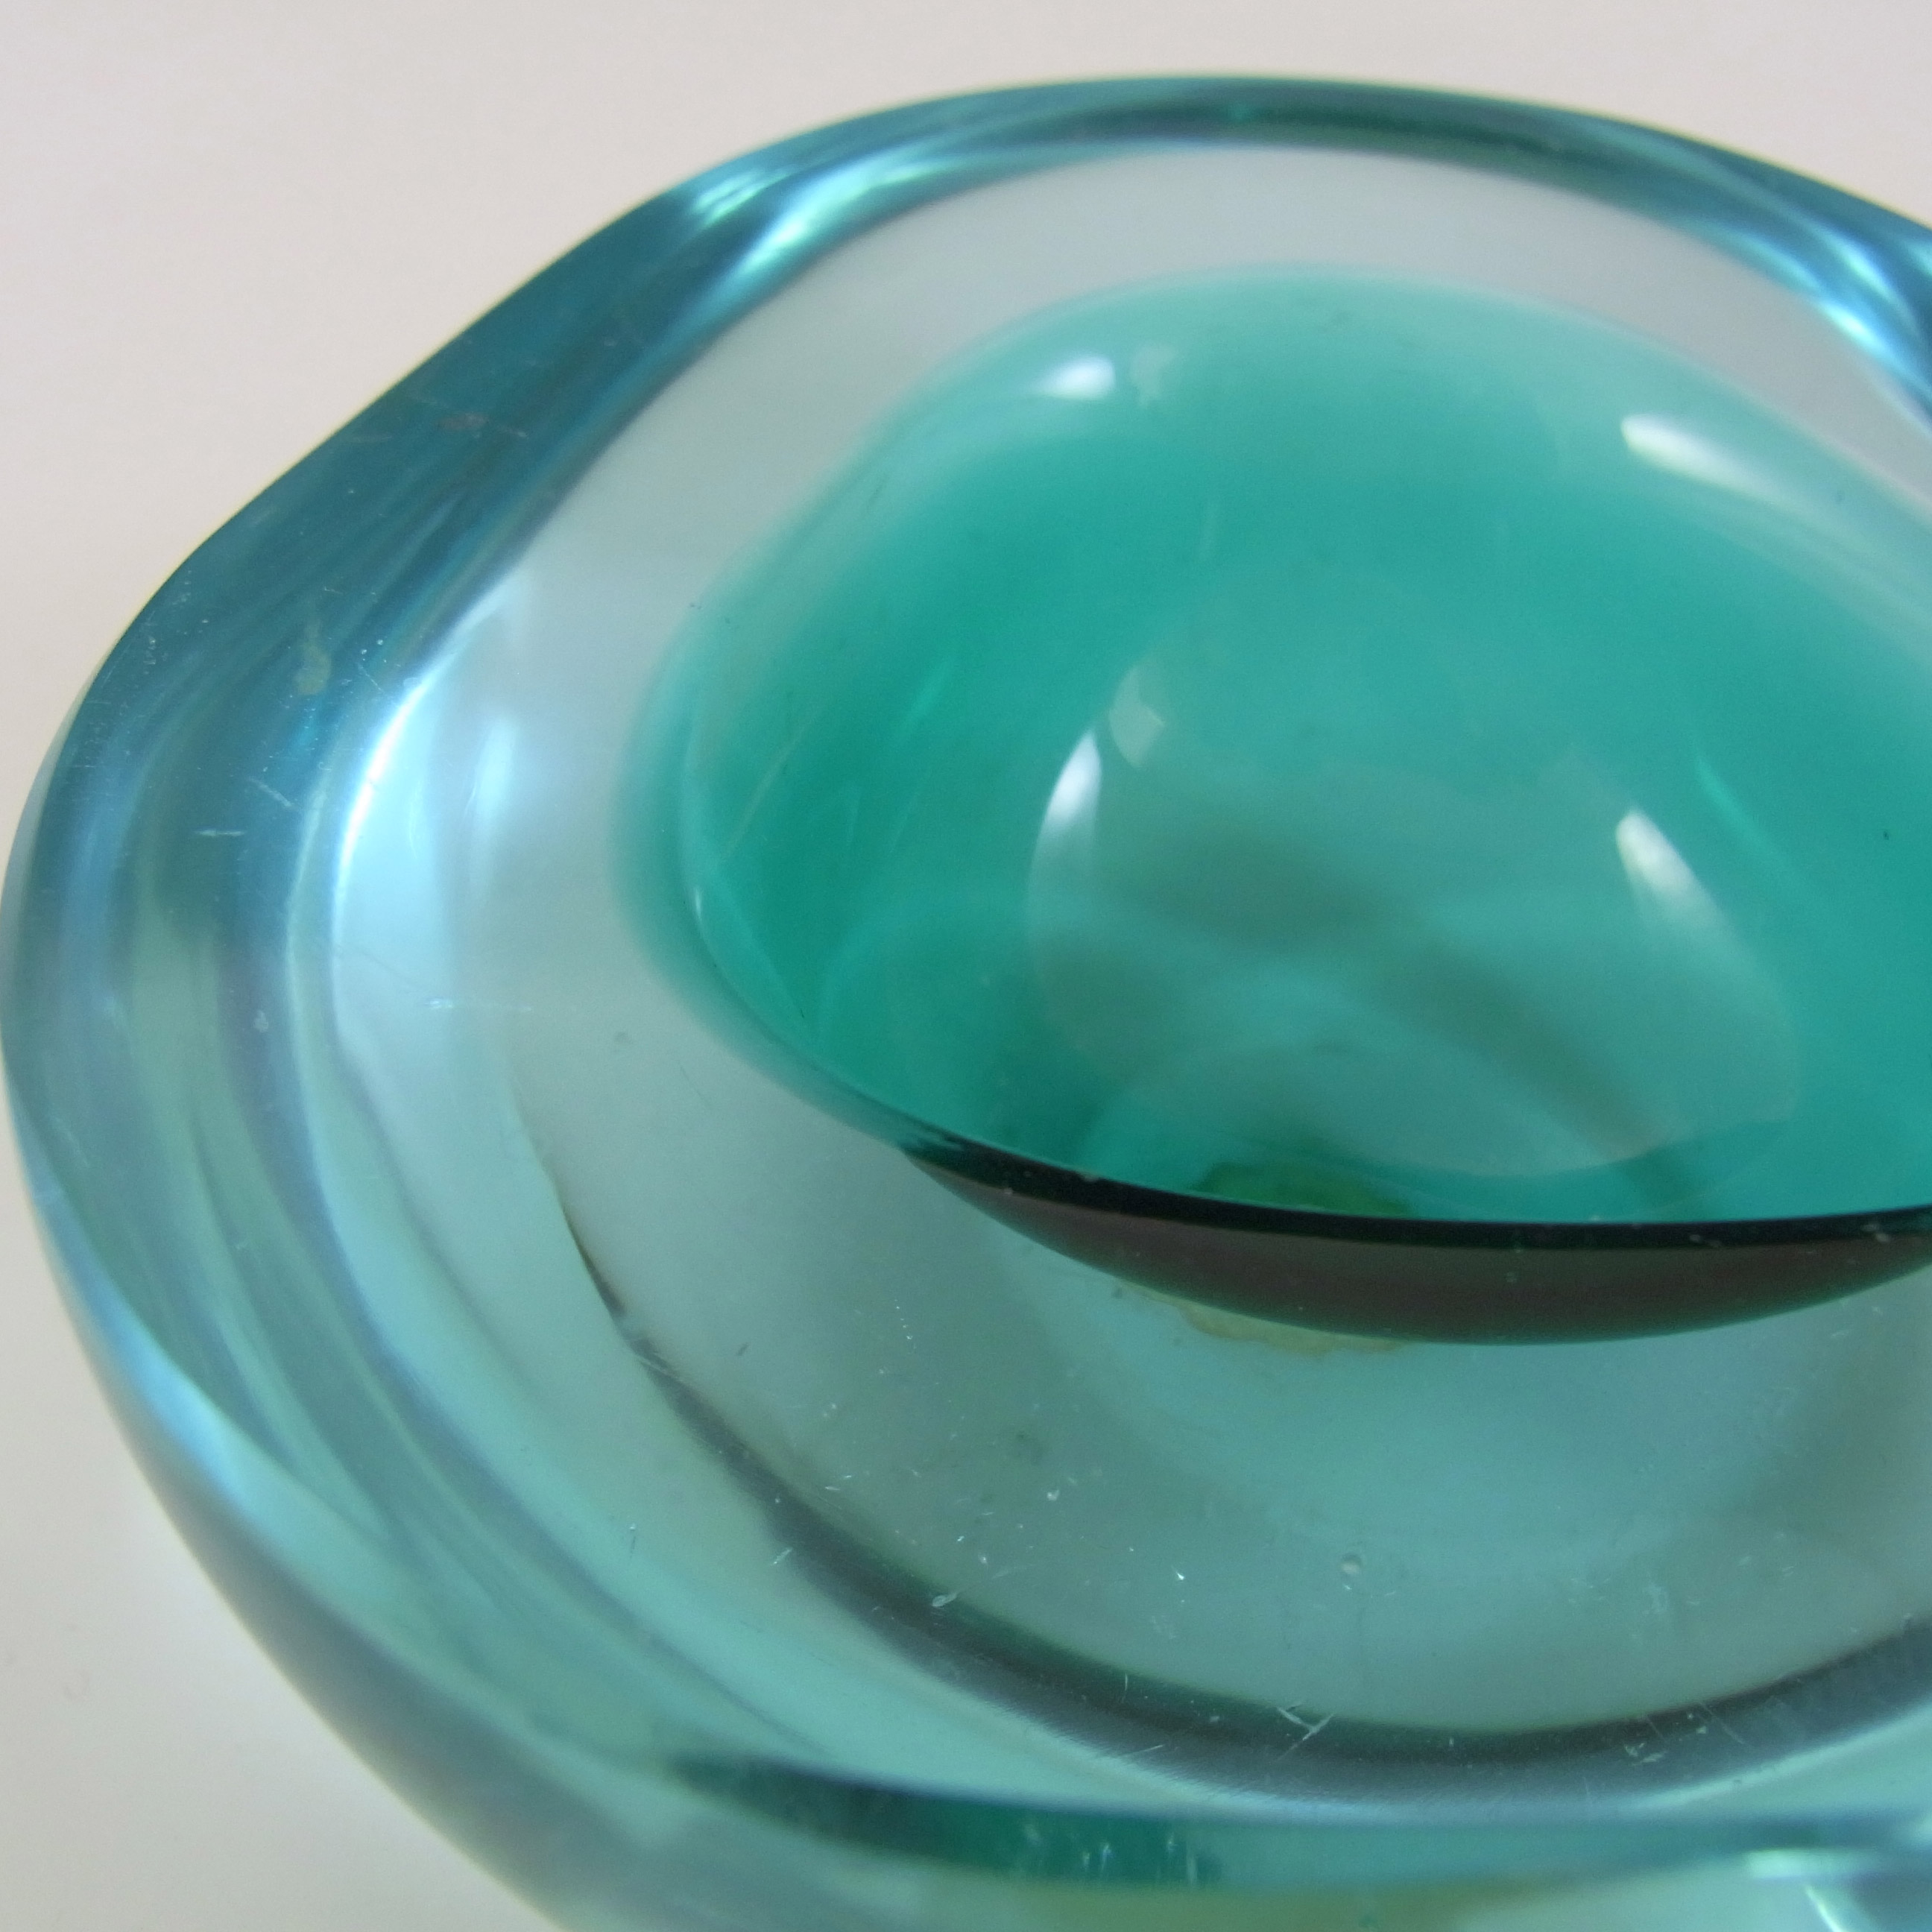 LABELLED Archimede Seguso Murano Blue Glass Geode Bowl - Click Image to Close